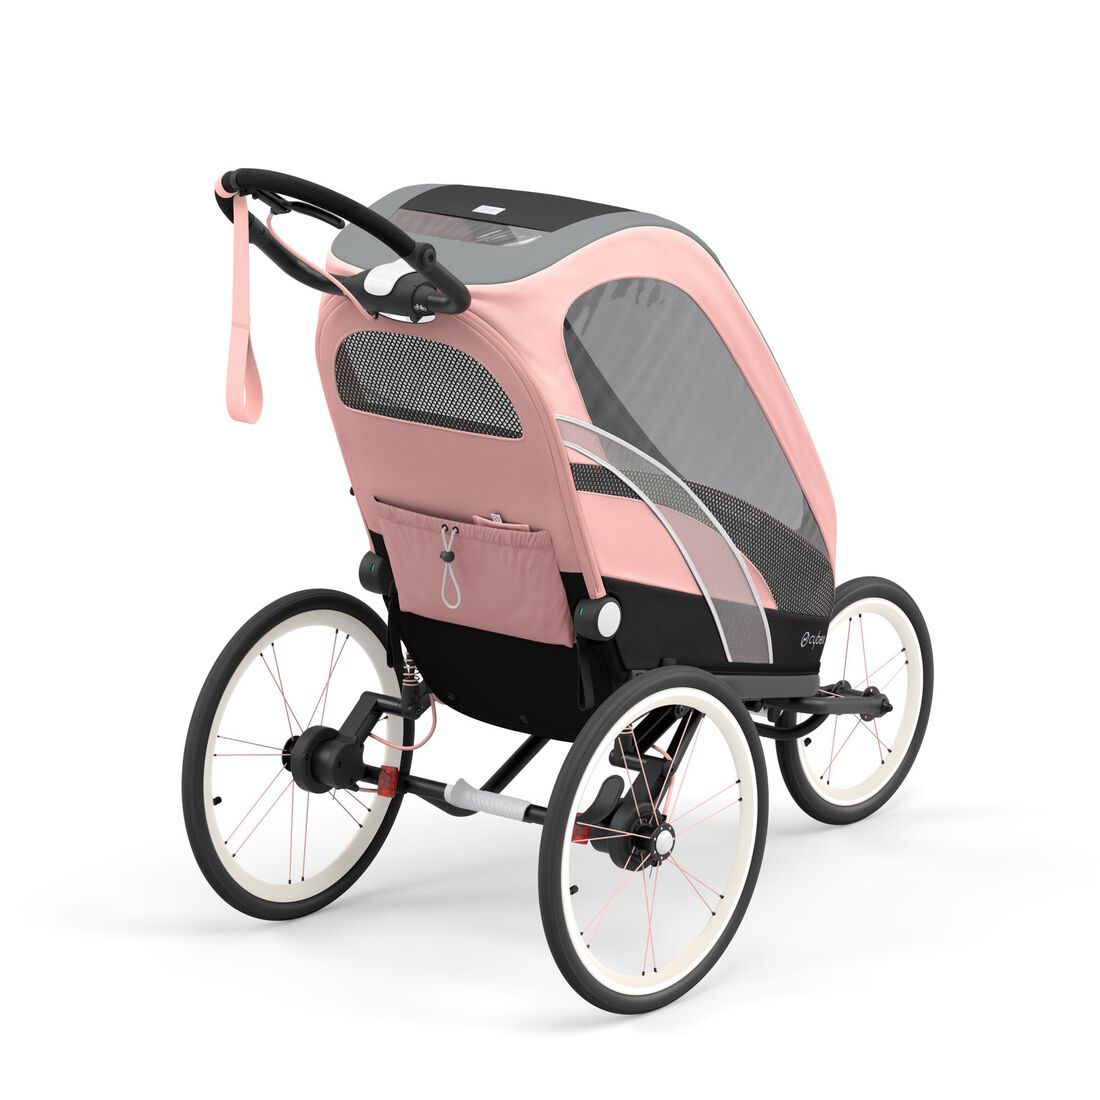 CYBEX Zeno Frame - Black With Pink Details in Black With Pink Details large image number 5